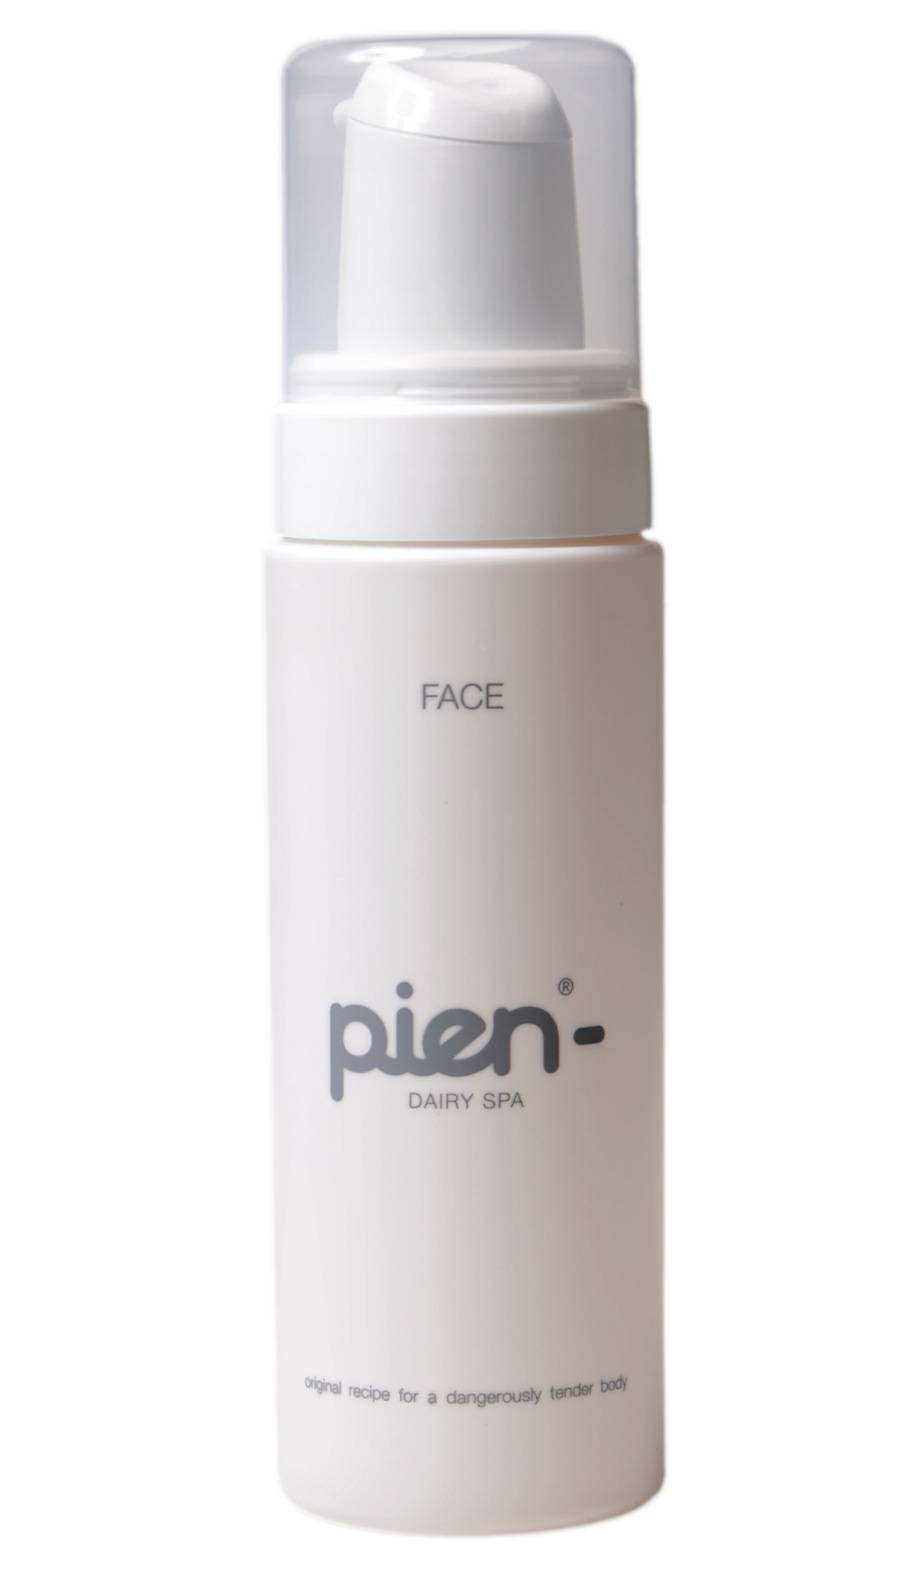 Pien-DAIRY SPA Face